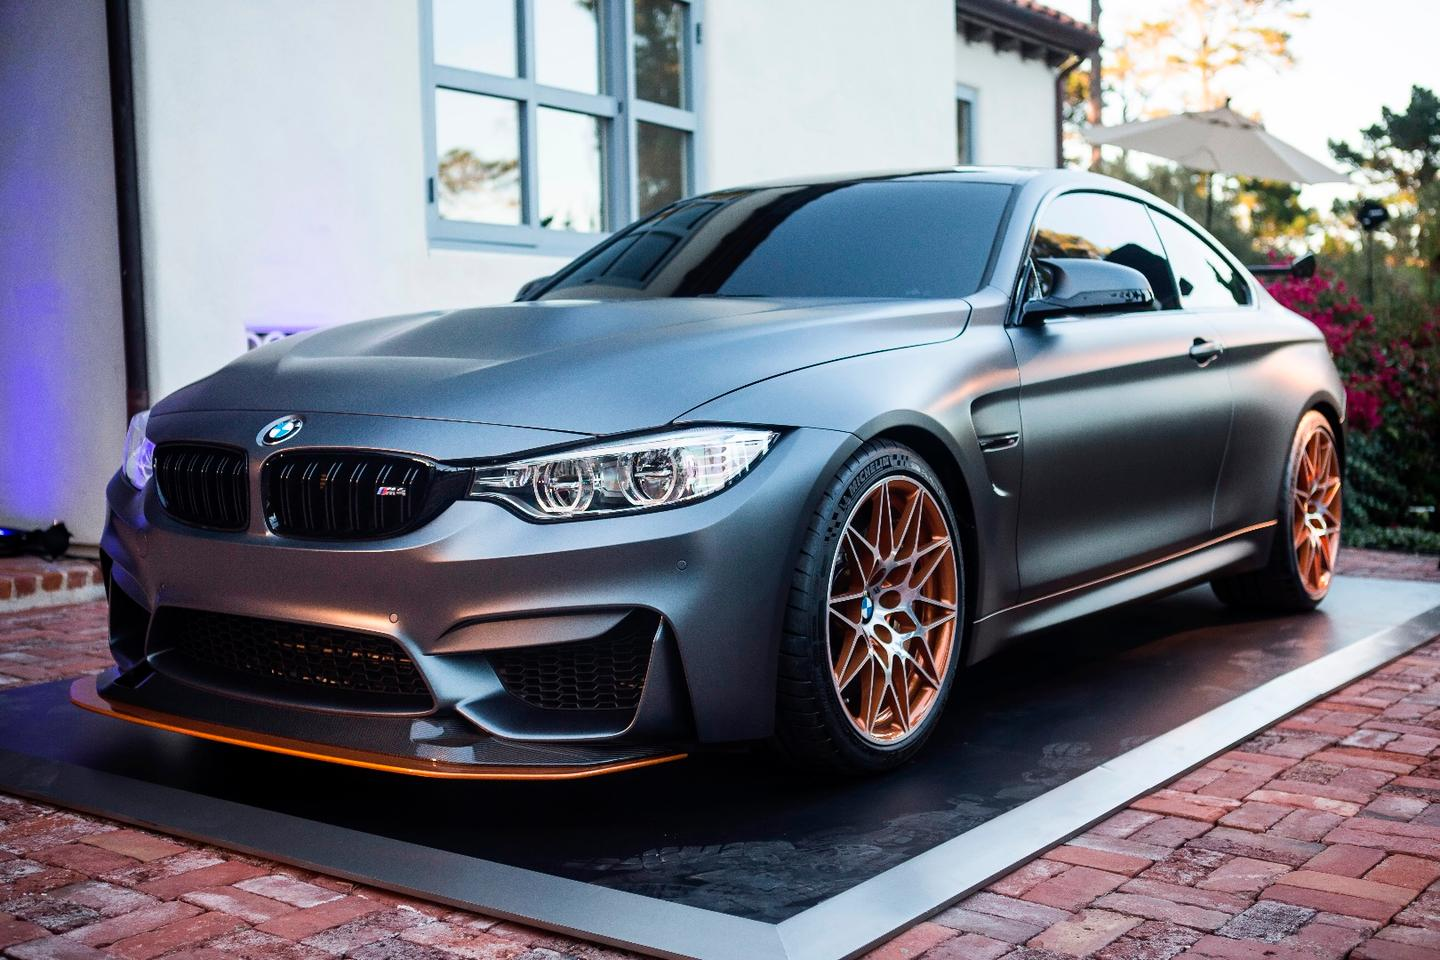 BMW's latest concept car makes use of a water injection system for performance gains